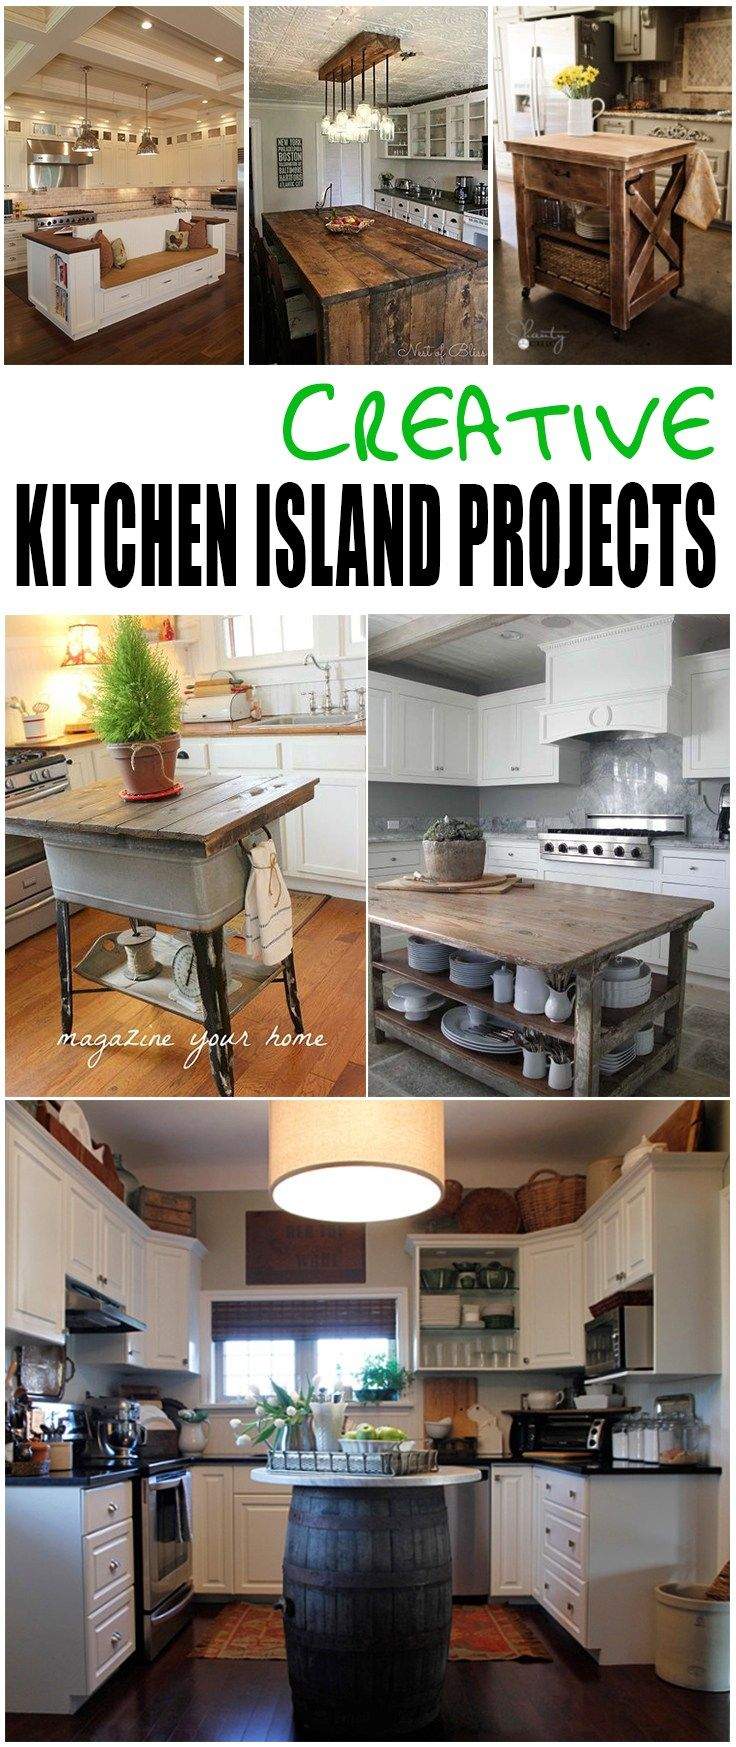 Small Crop Of Kitchen Island Projects